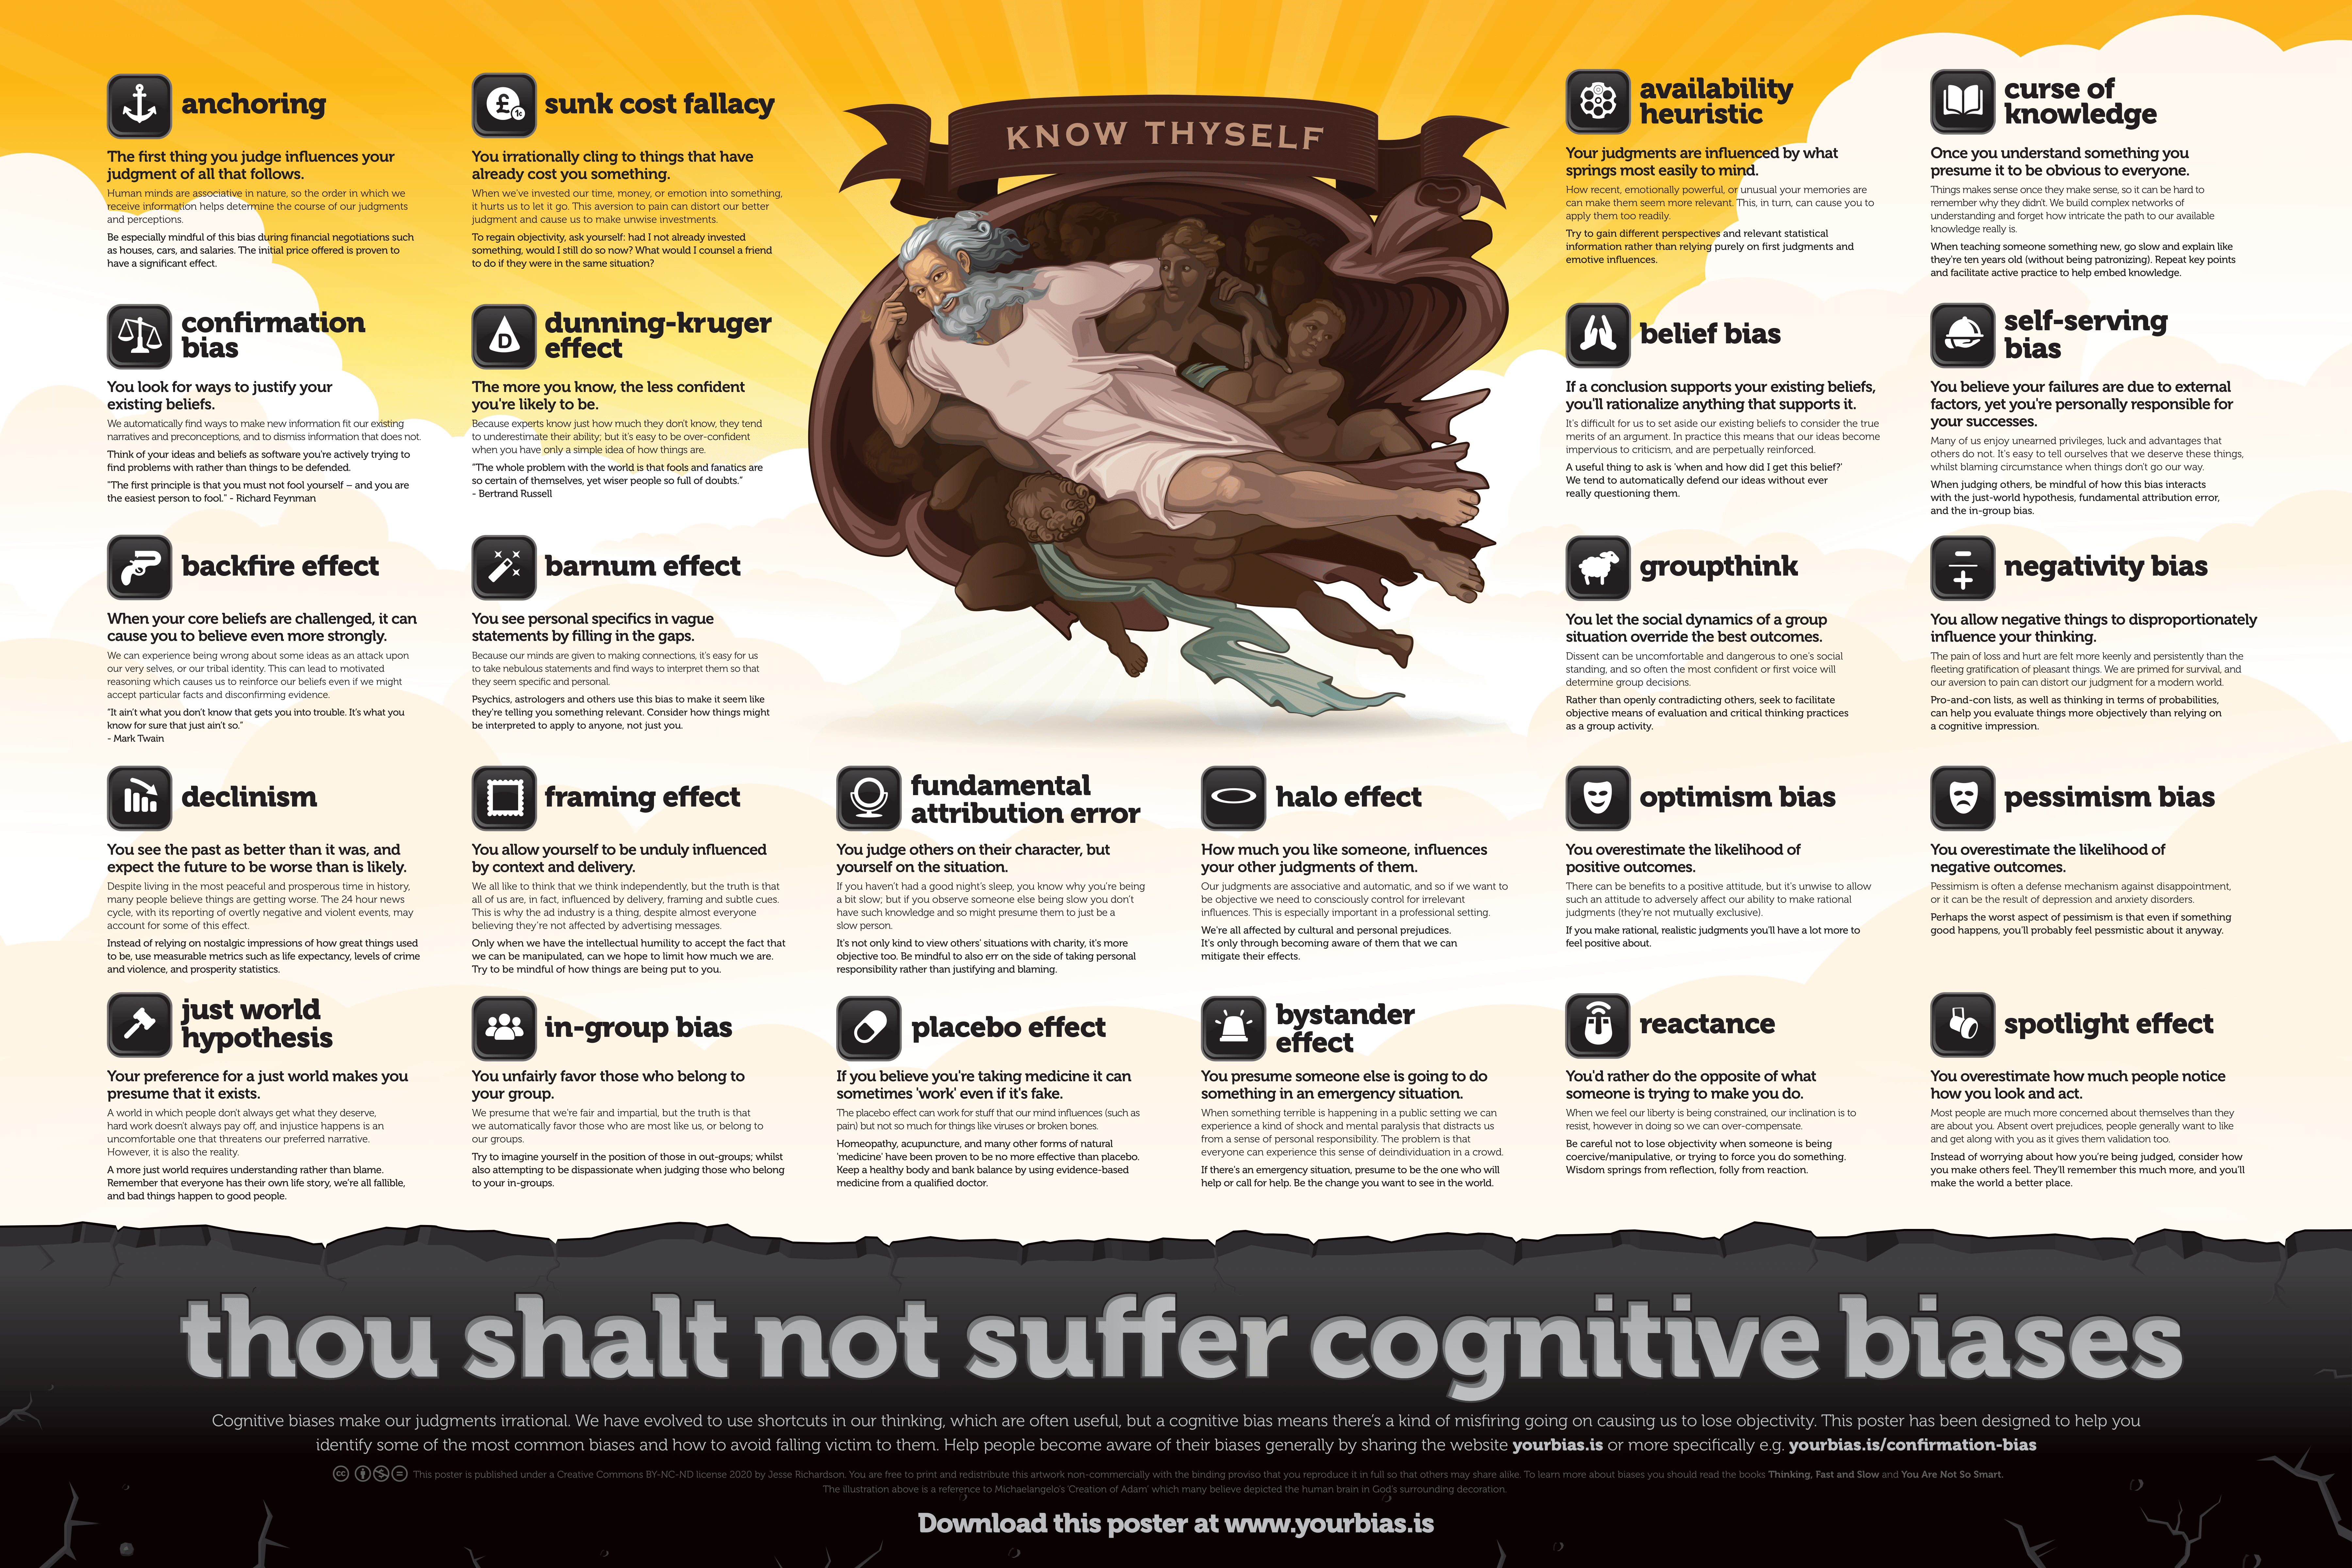 A guide summarising all the cognitive biases that cloud our judgement